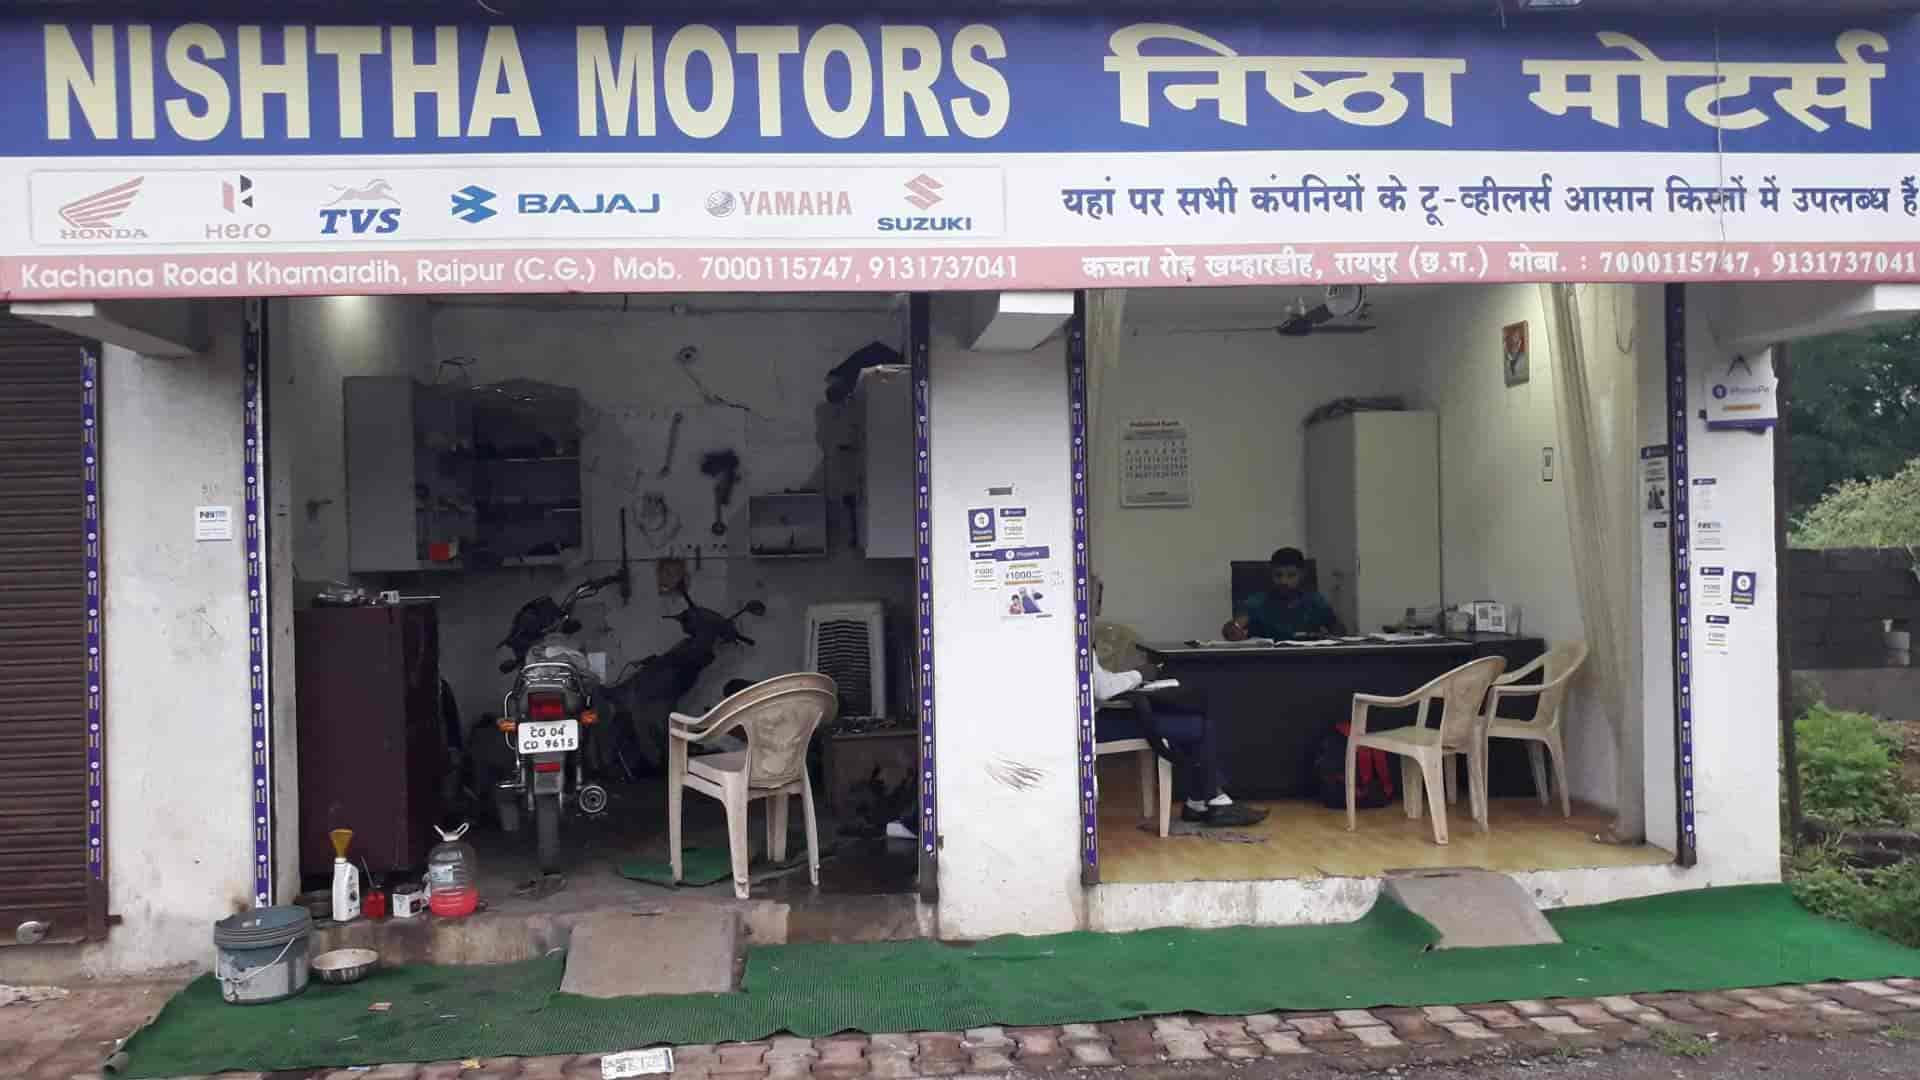 Top Bajaj Motorcycle Dealers In Telibandha Best Bajaj Motorcycle